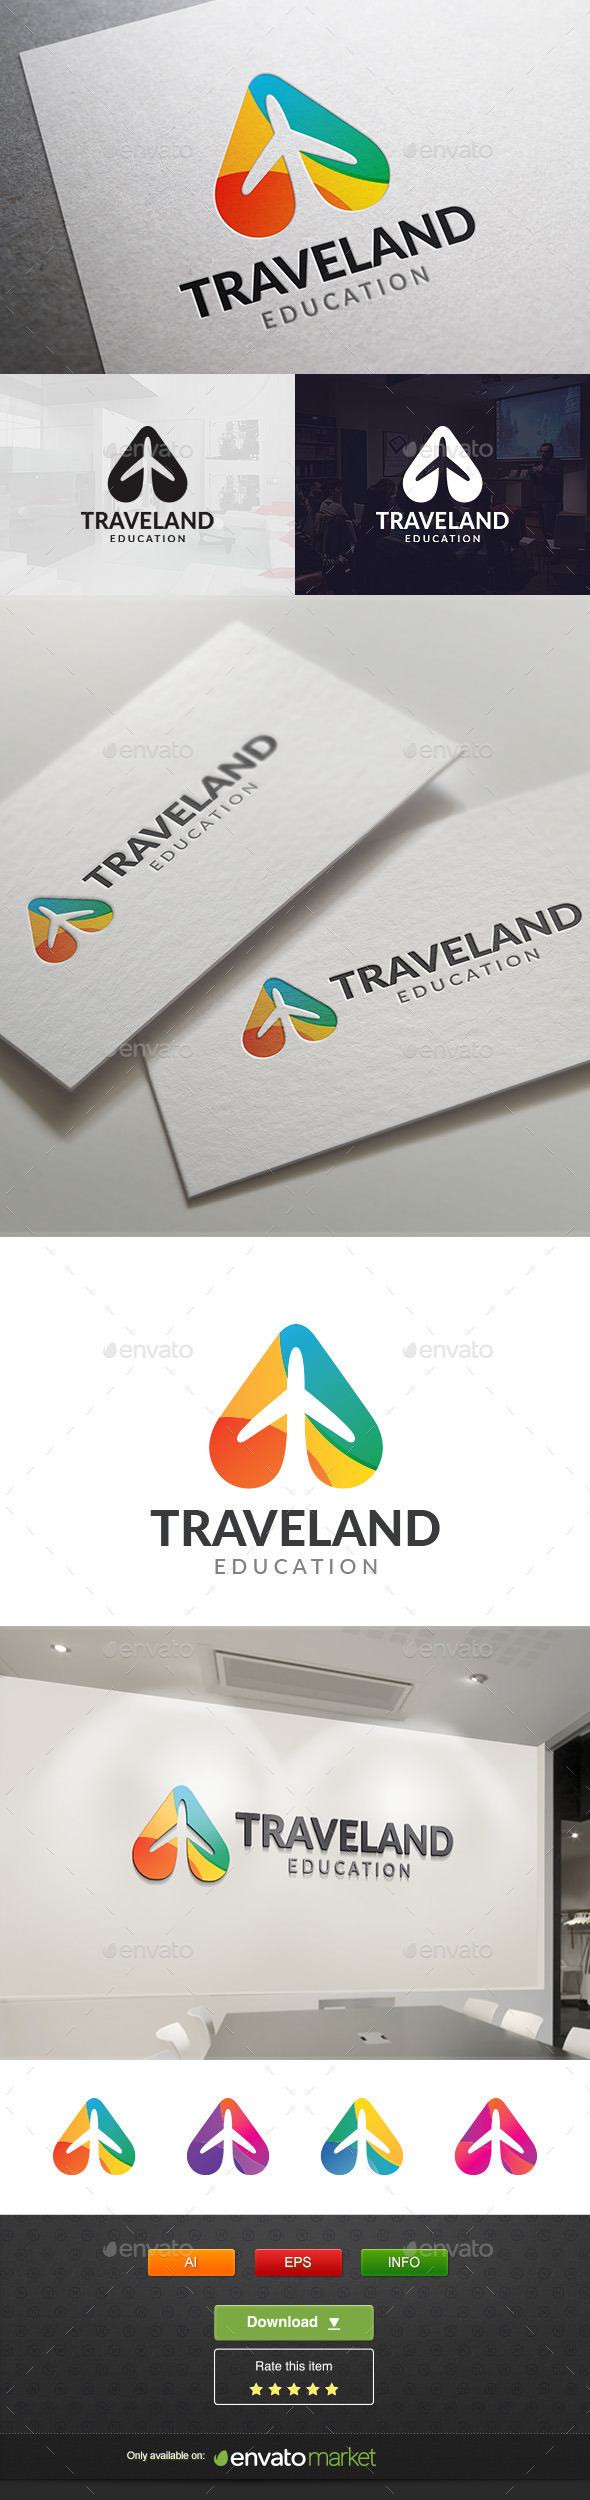 Travel Land - Vector Abstract